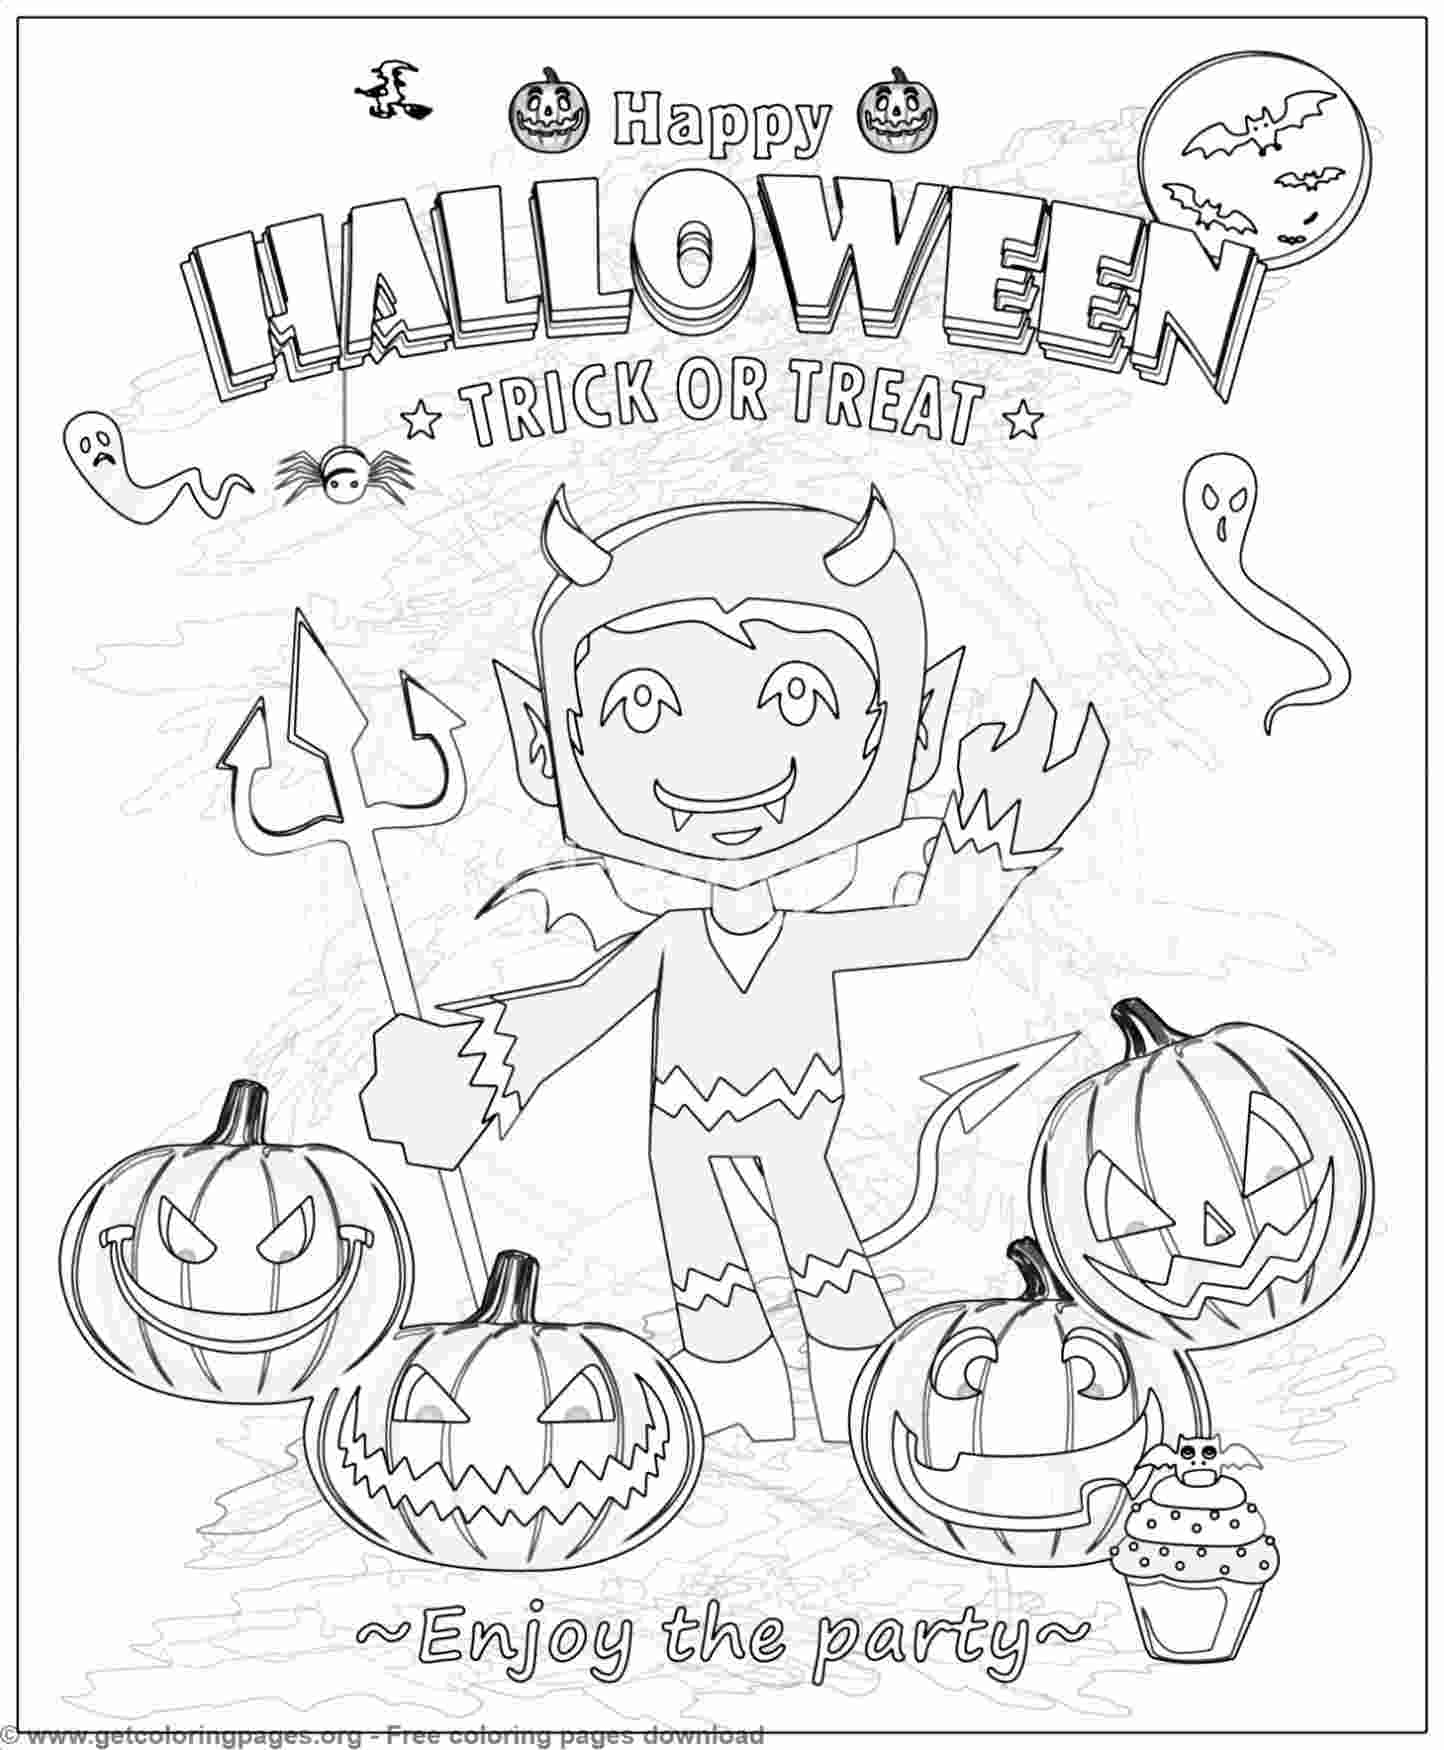 23 Happy Halloween Coloring Pages – GetColoringPages.org